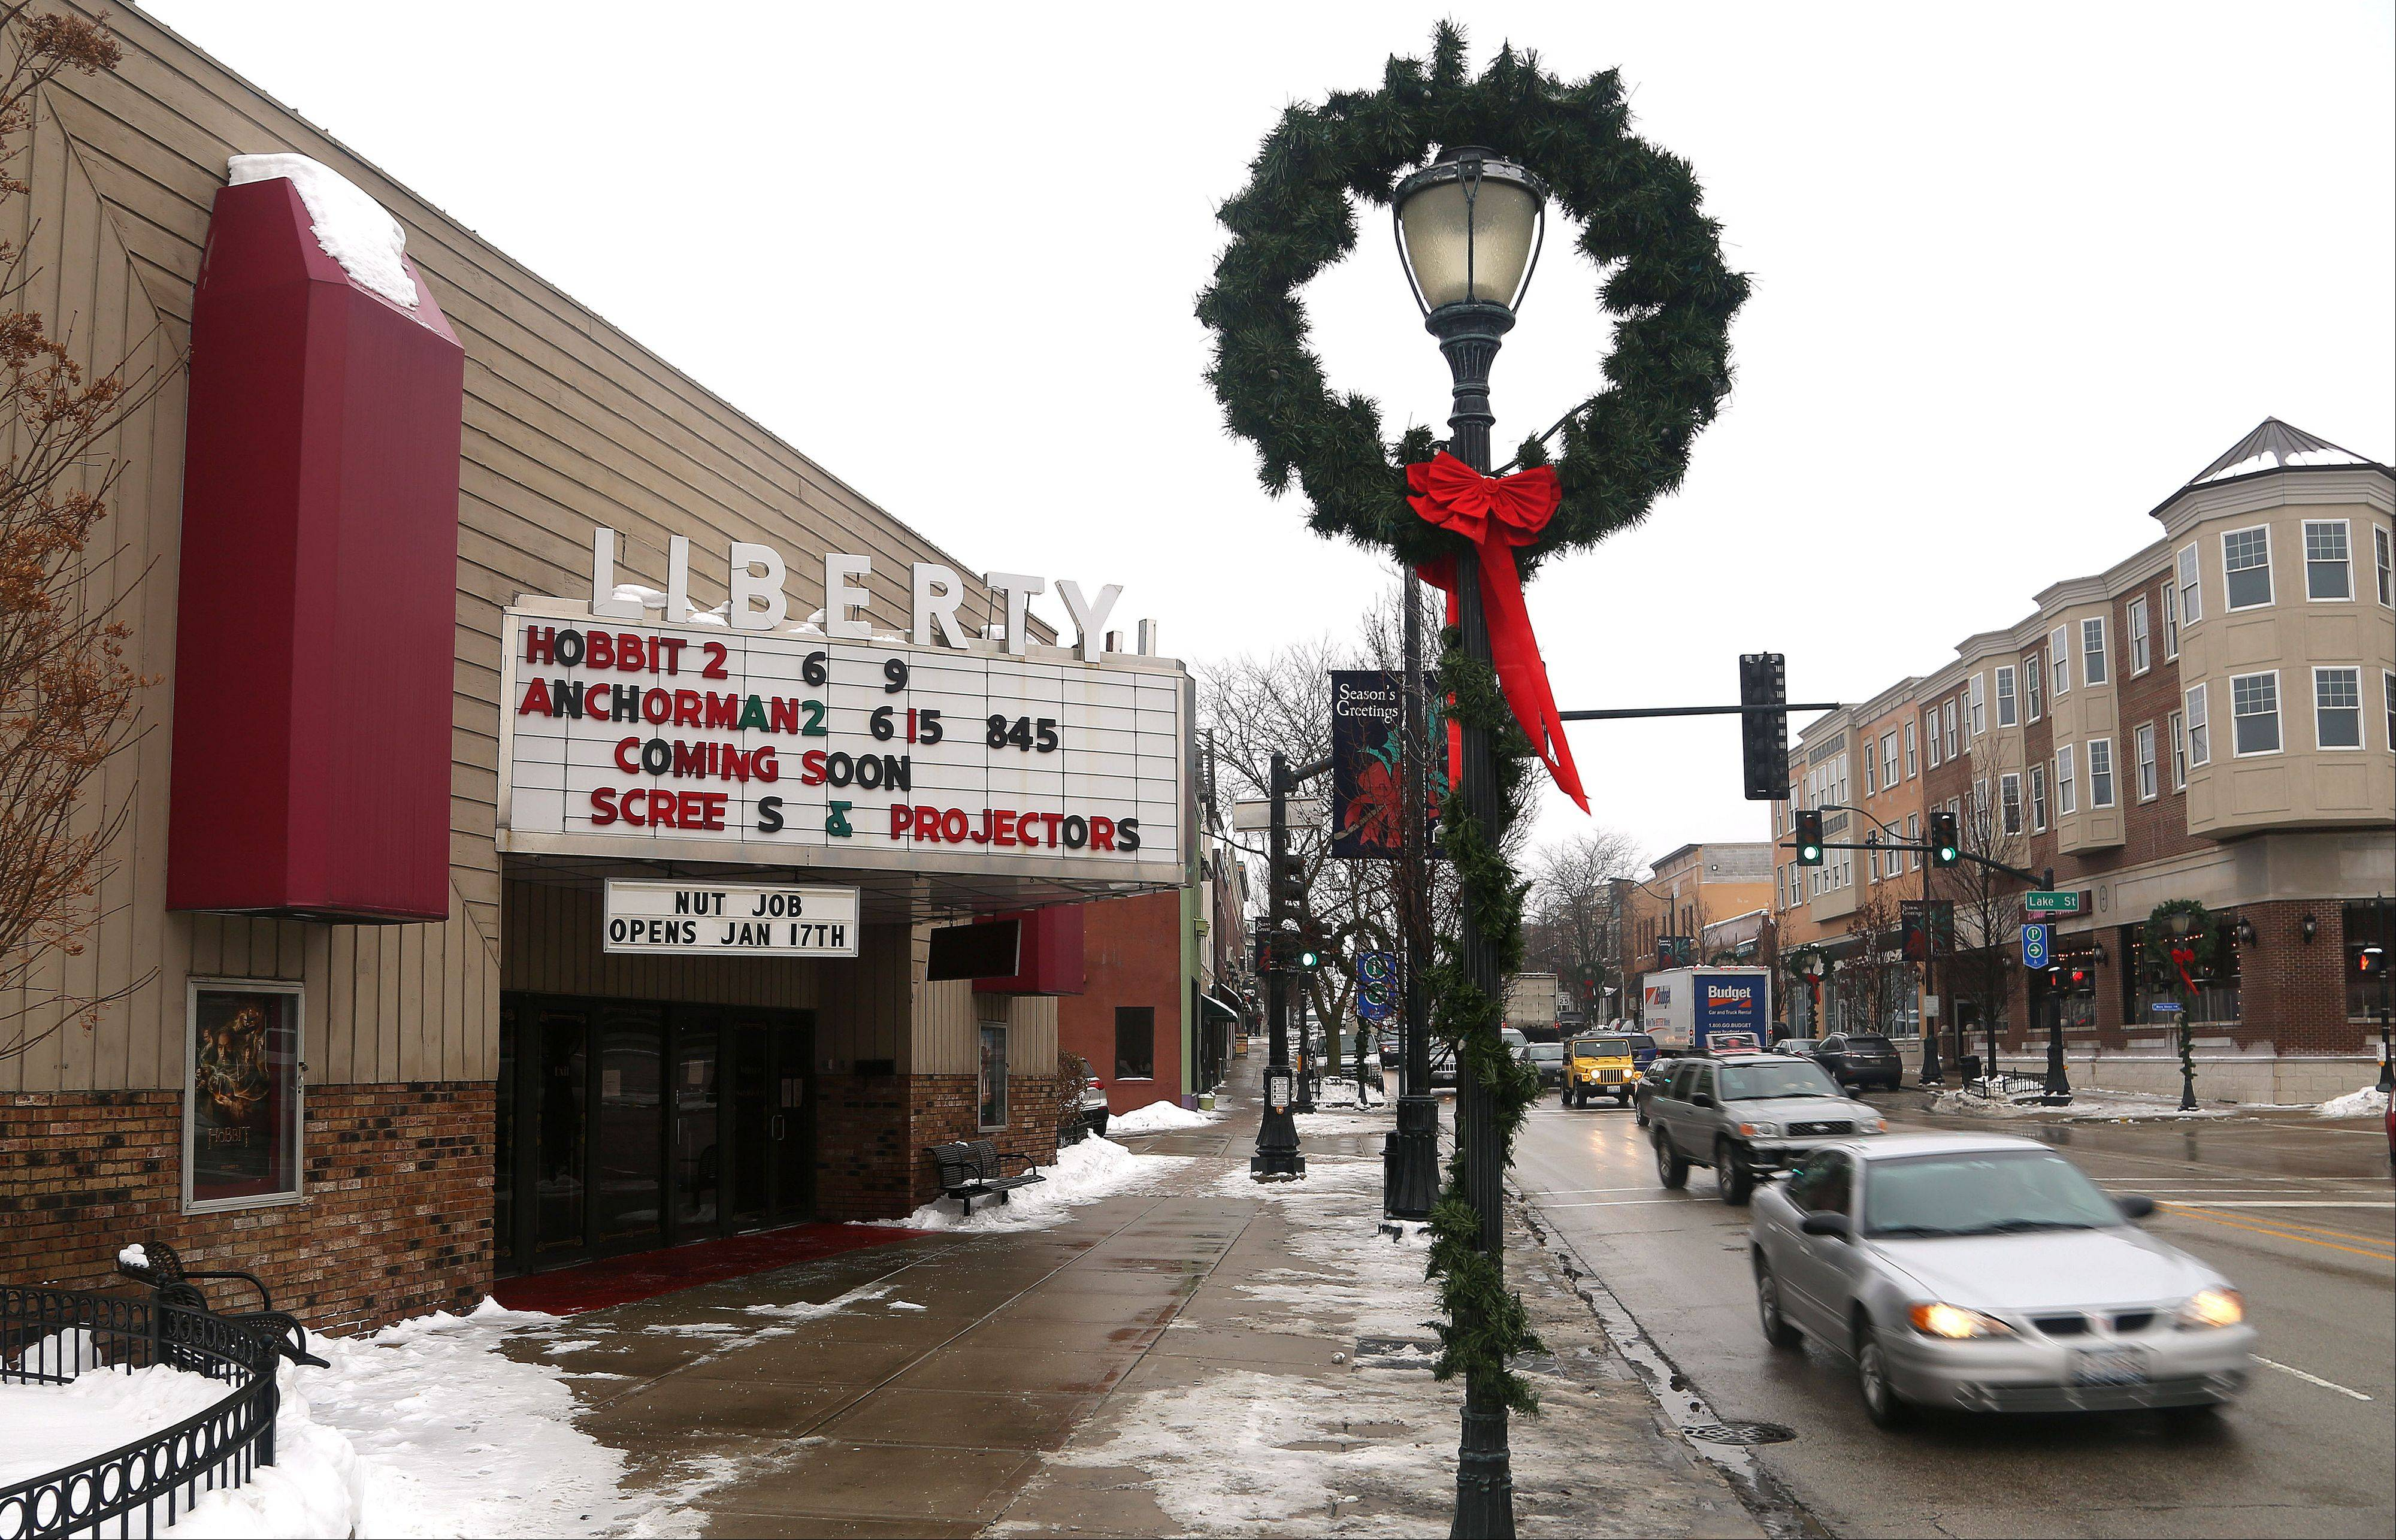 The Liberty 1 & 2 Theater in downtown Libertyville, which has been a mainstay since 1937, soon will embrace the digital age.